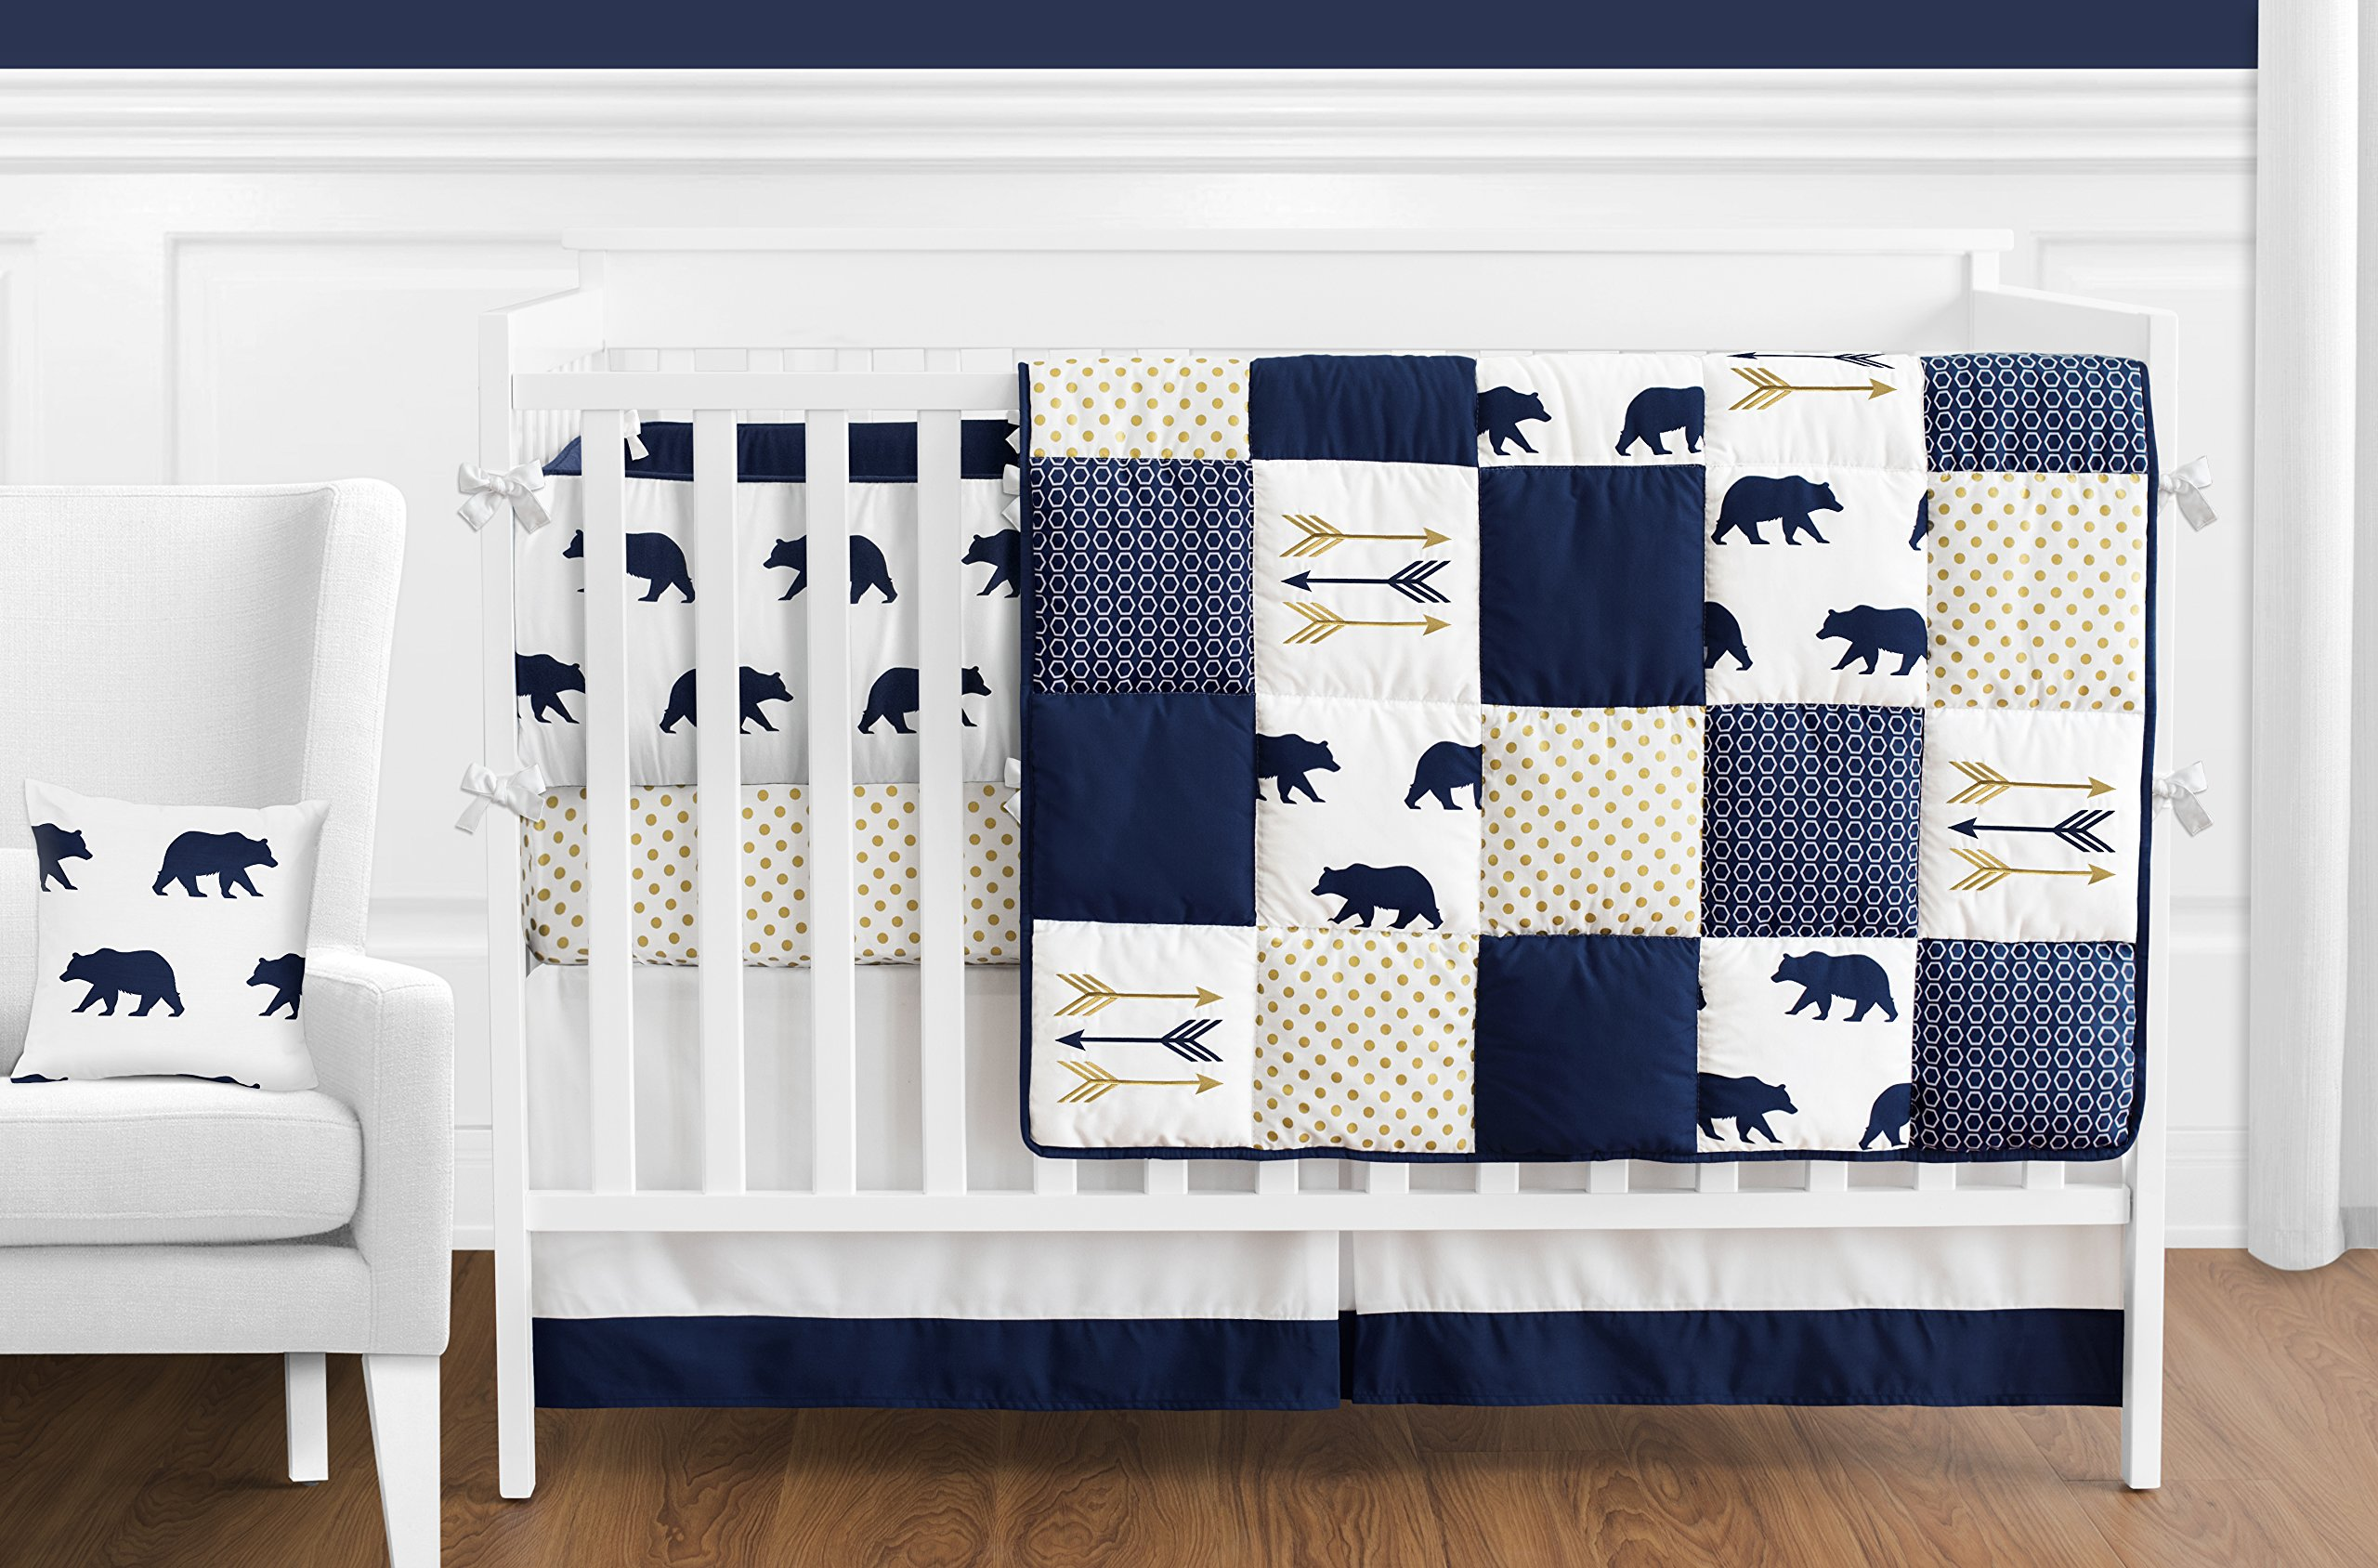 Sweet Jojo Designs 9-Piece Navy Blue, Gold, and White Patchwork Big Bear Boy Baby Crib Bedding Set with Bumper s